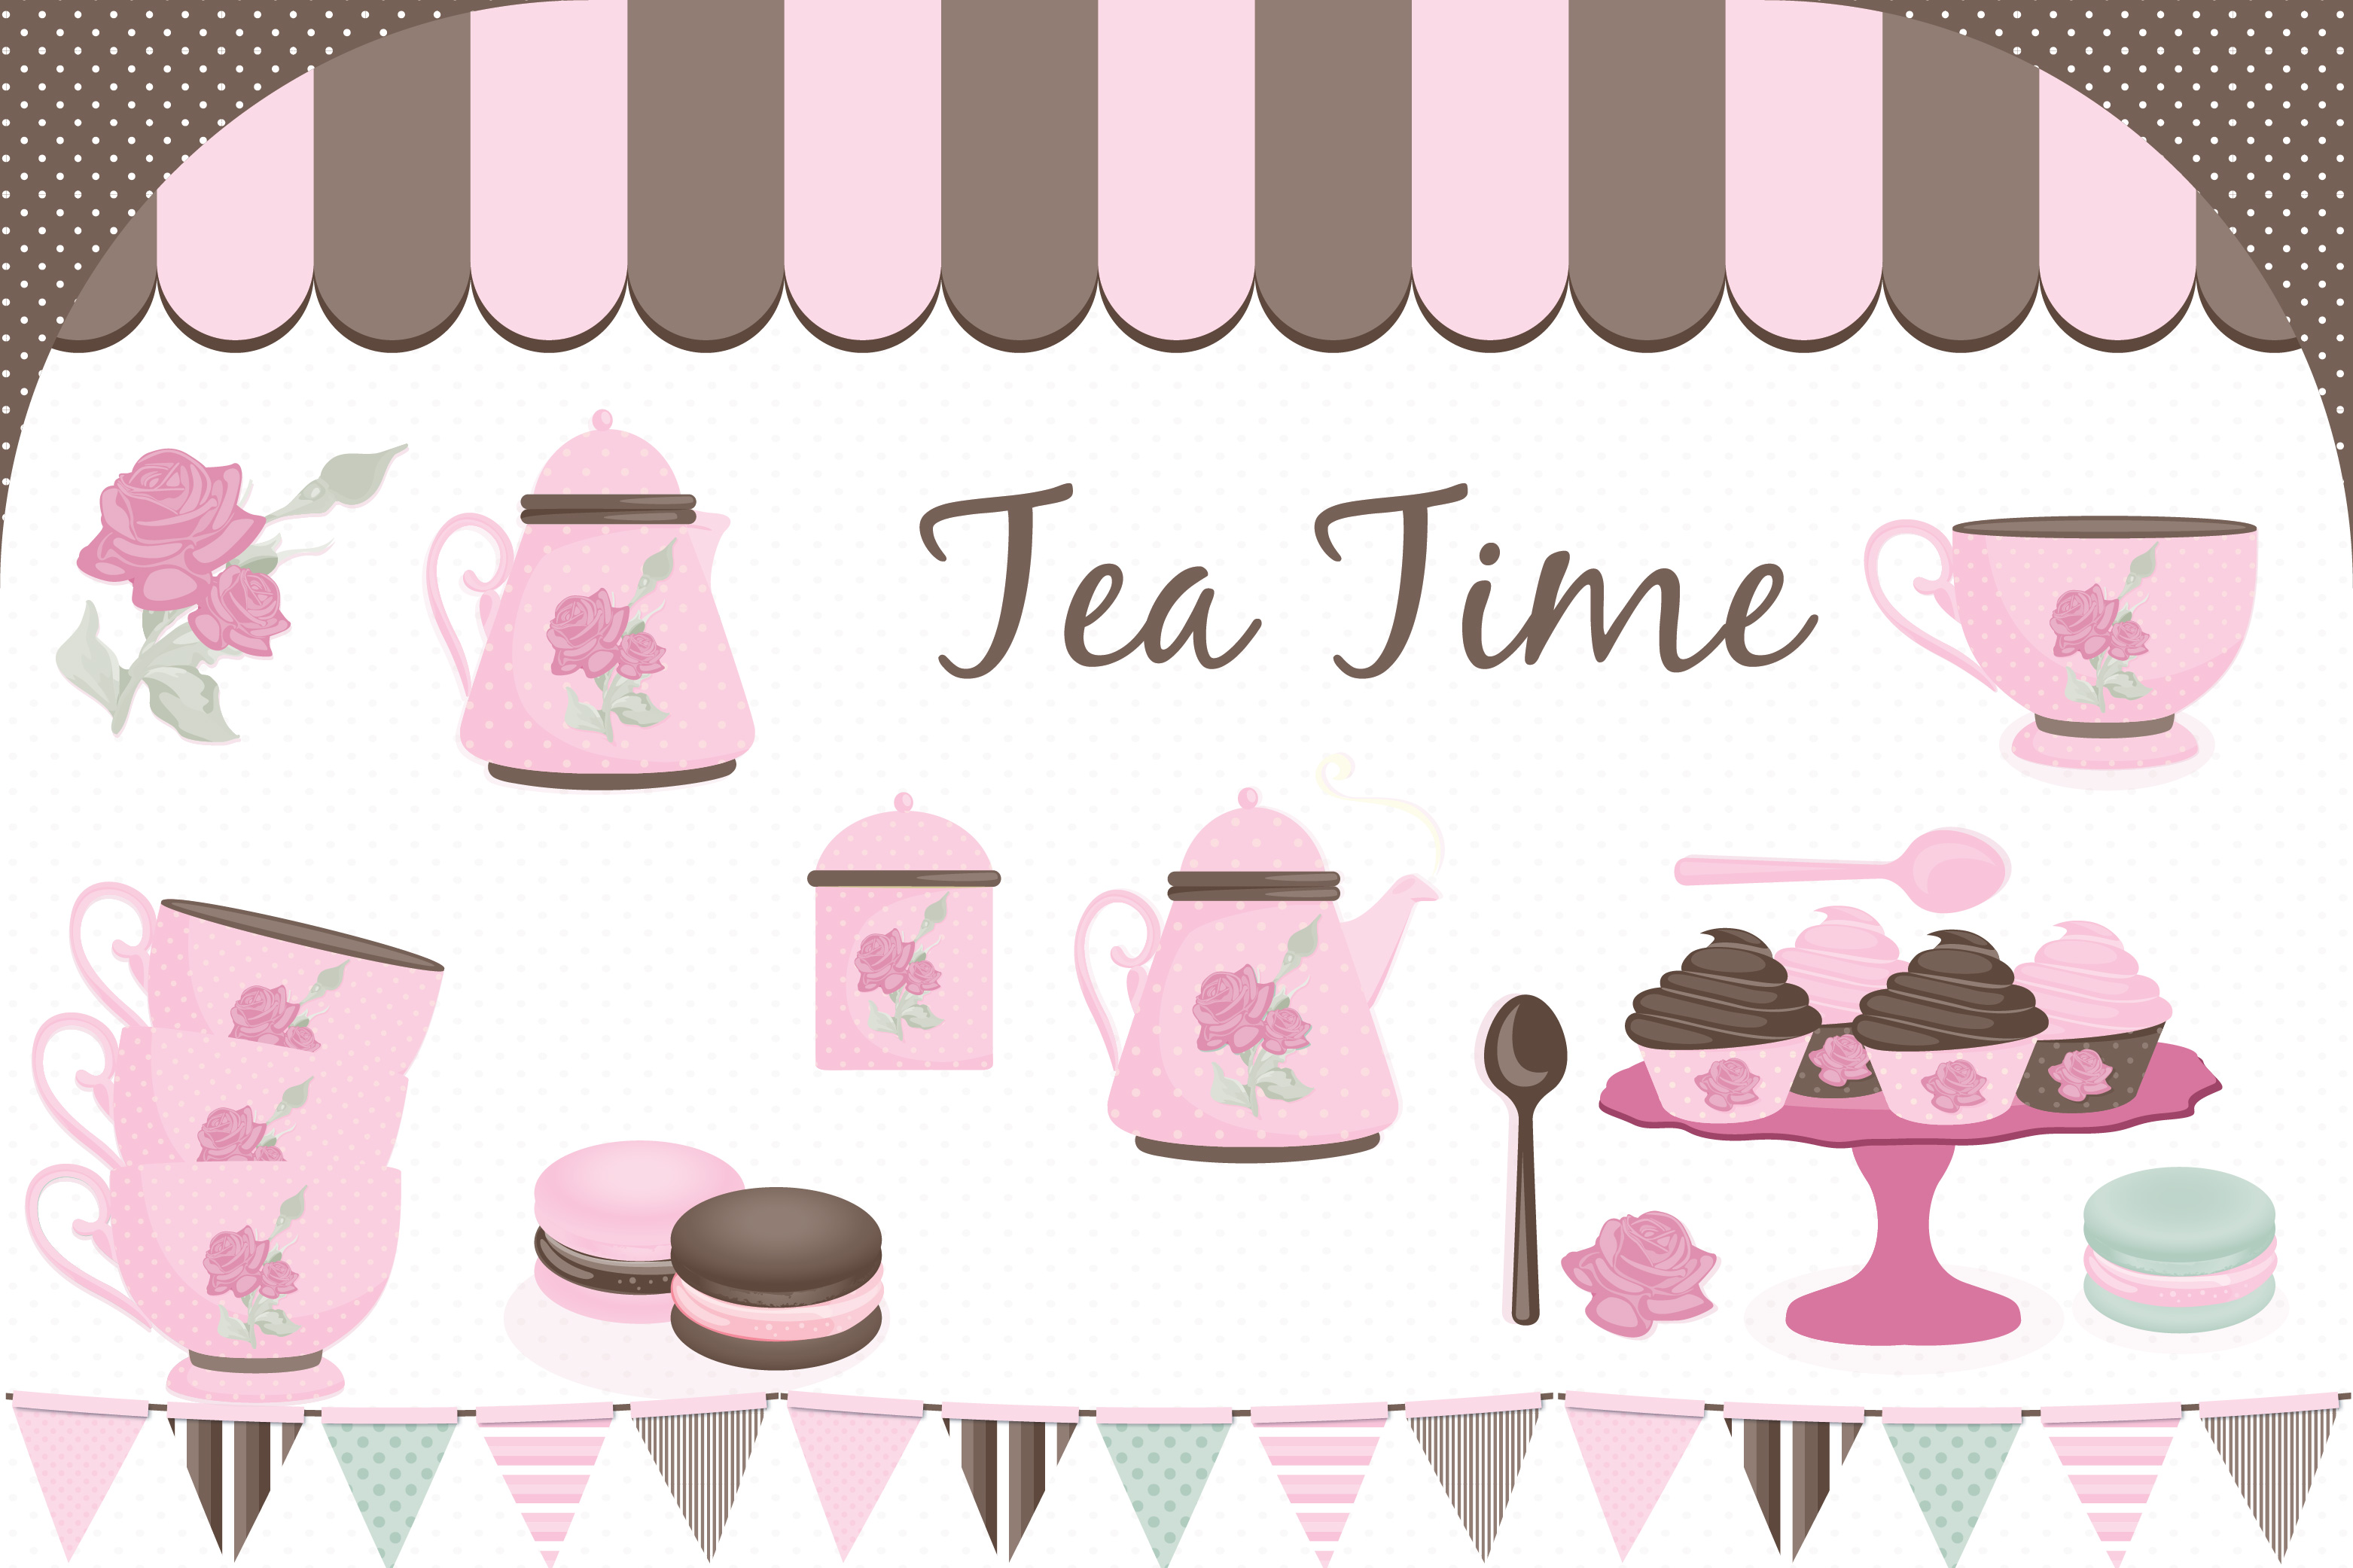 Tea party pictures clipart svg free library Tea party clipart, Tea party graphics svg free library